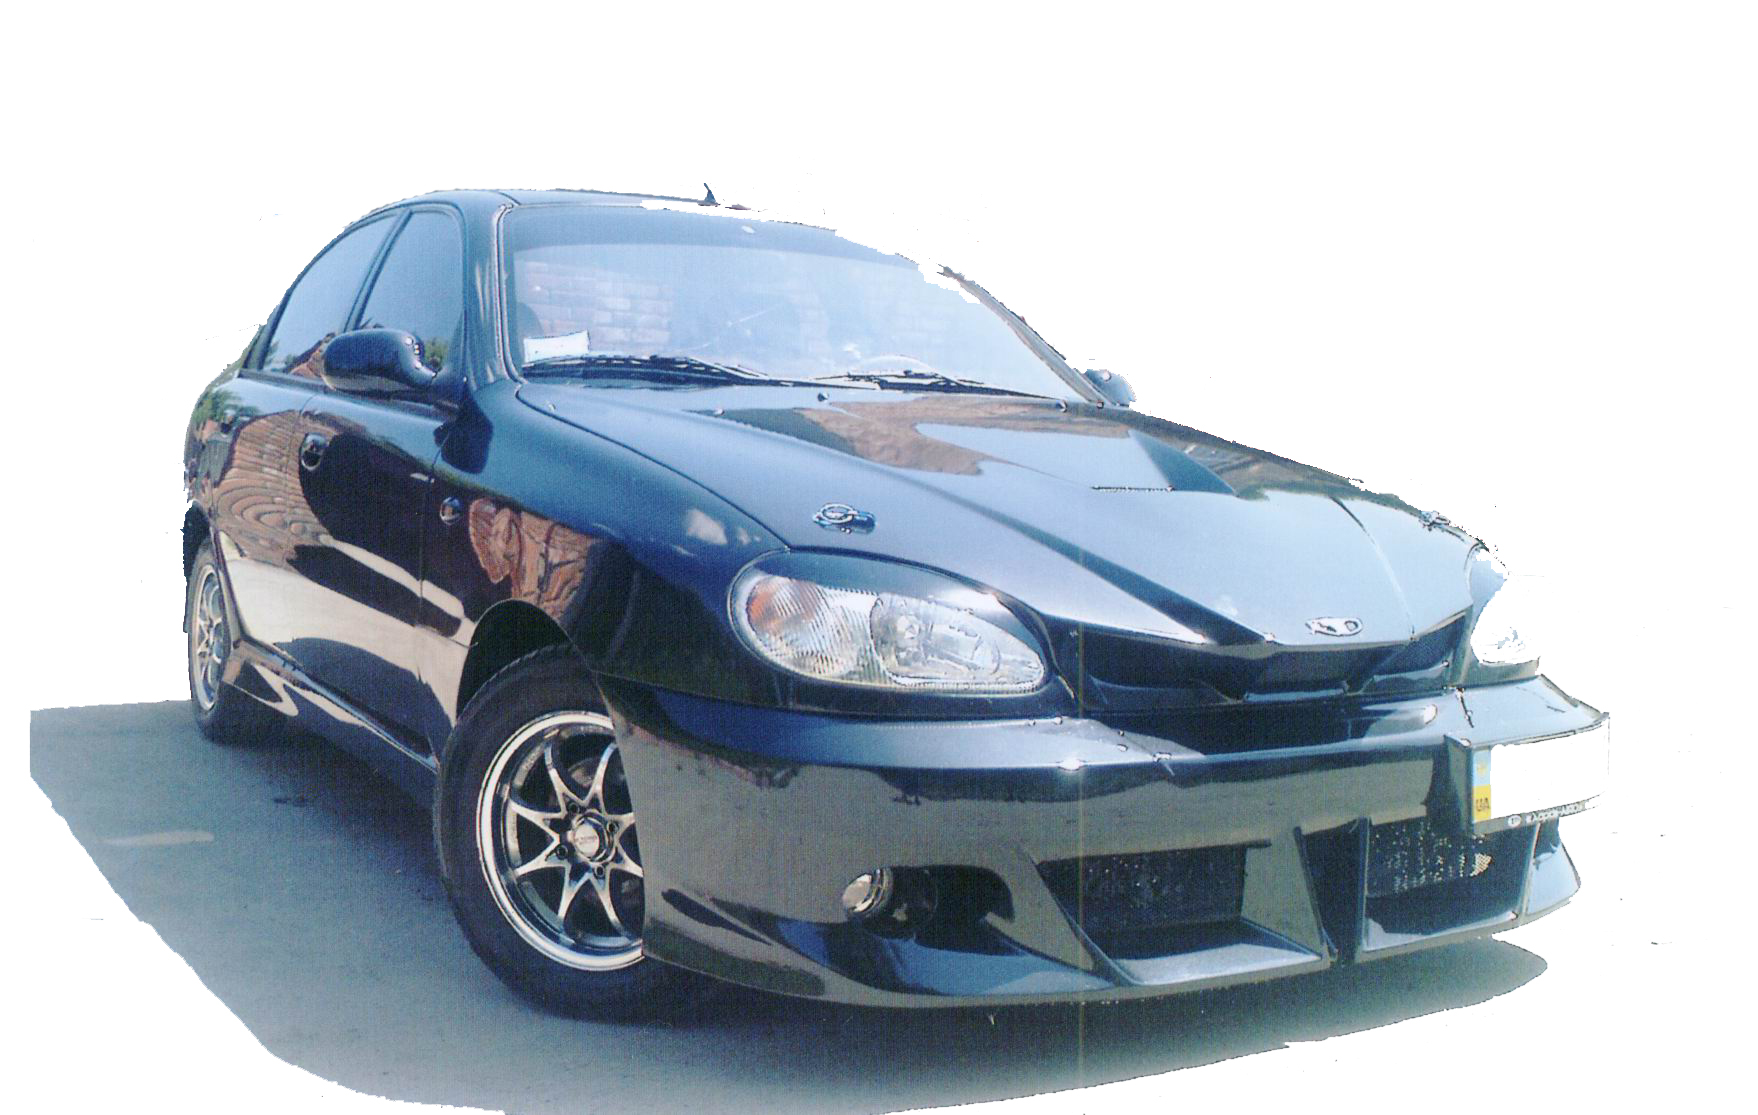 File:Tuning daewoo lanos1.jpg - Wikimedia Commons